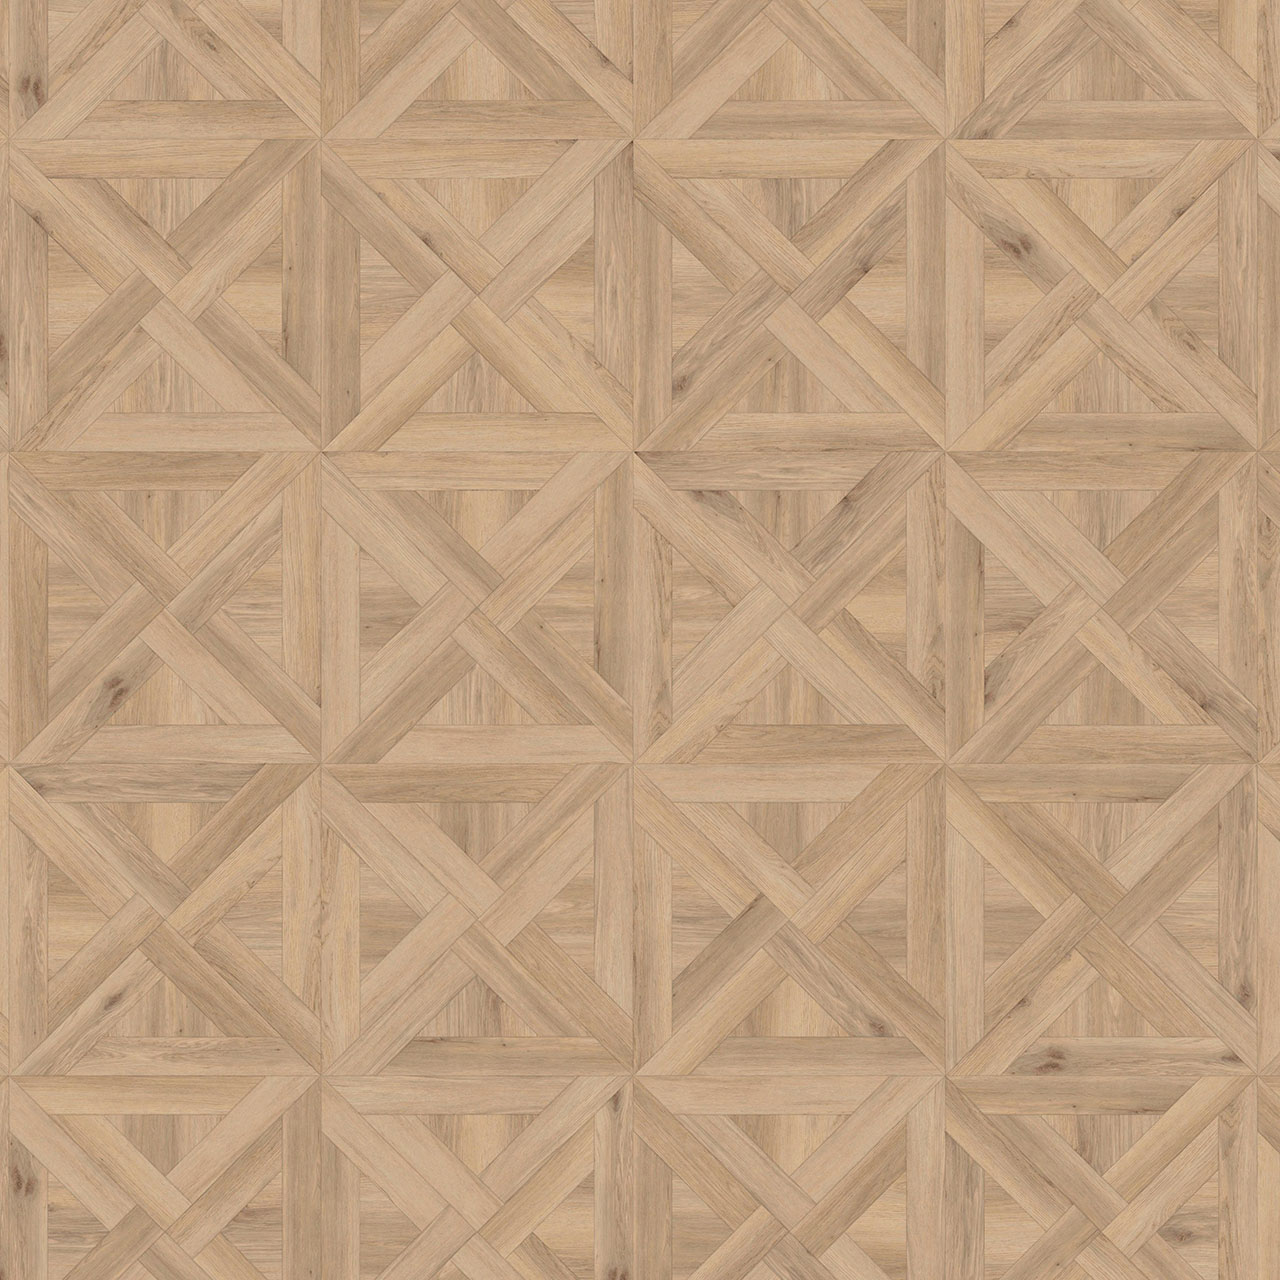 Amtico International: Jacquard - DC273